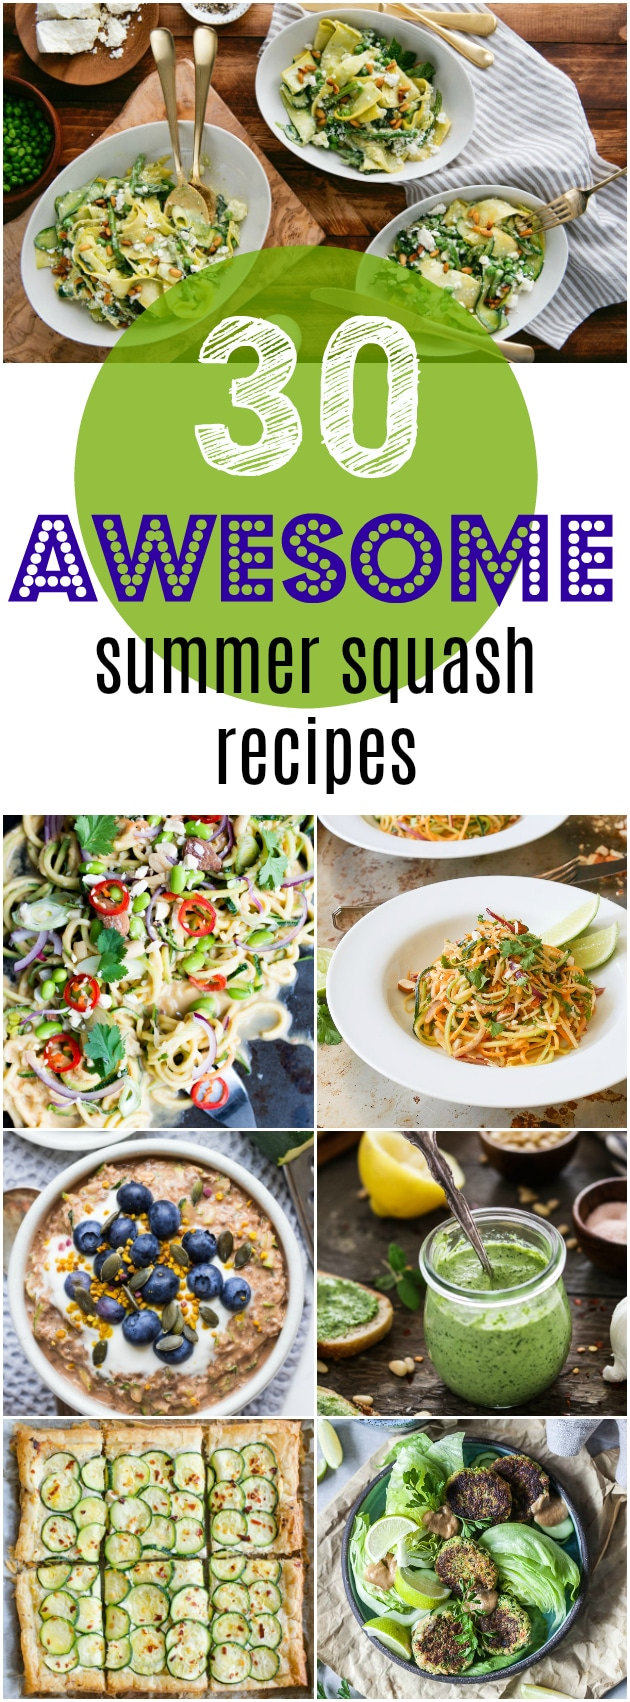 30 AWESOME Summer Squash Recipes.  Summer Squash have arrived and they are popping up everywhere! What will you be making?  #summersquash #squash #veg